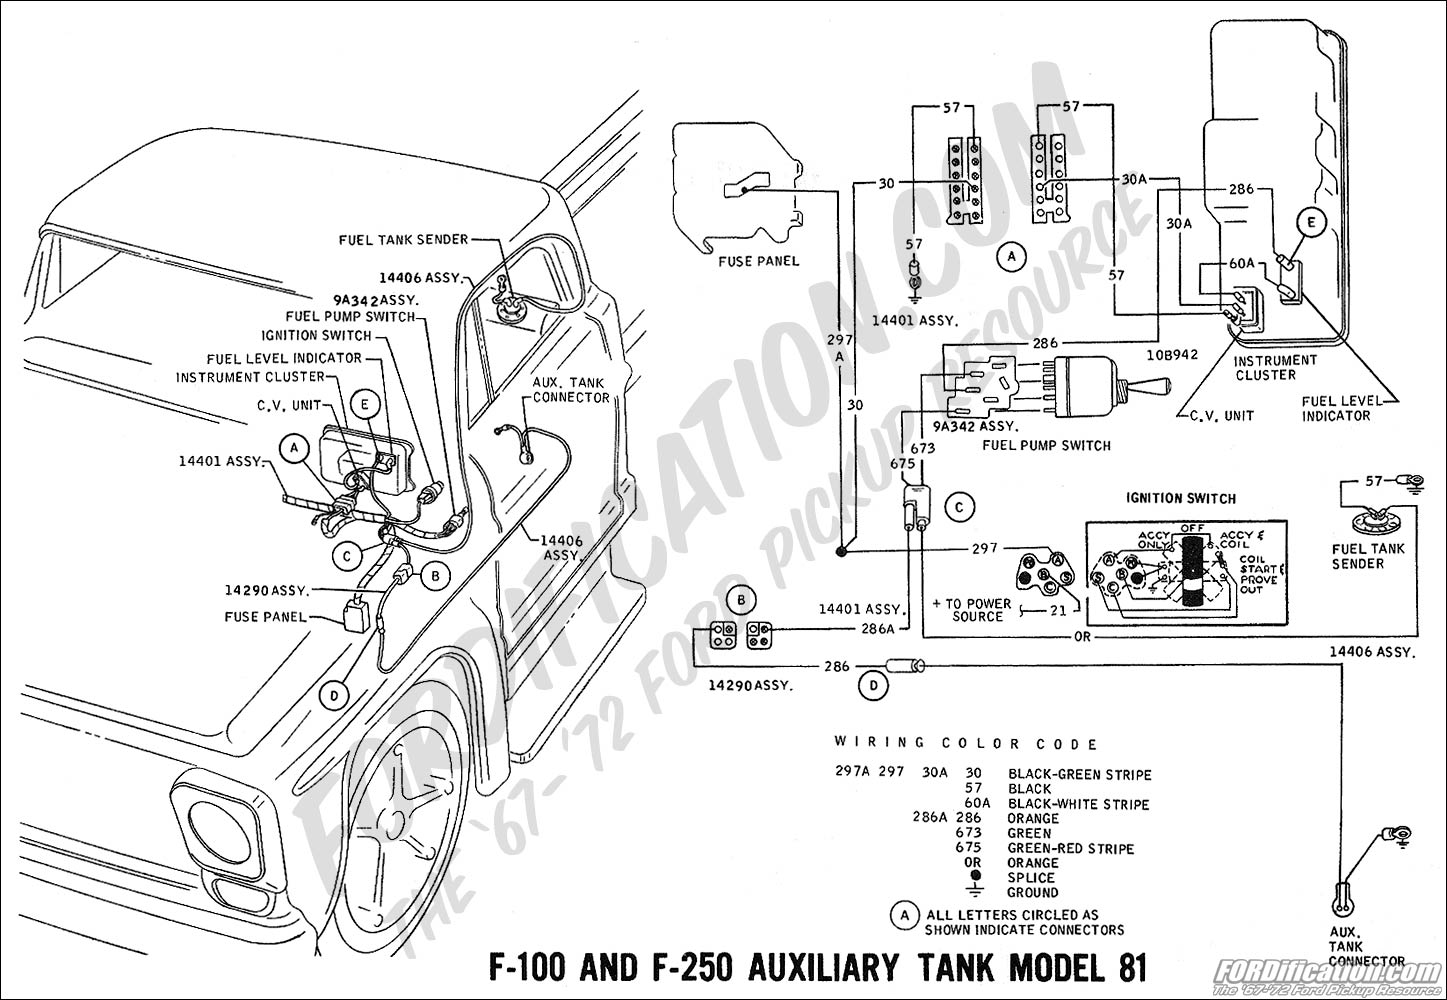 wiring_69aux fuel 69 f100 wiring diagram 1973 ford f100 wiring diagram \u2022 wiring Ford E-350 Fuse Box Diagram at nearapp.co